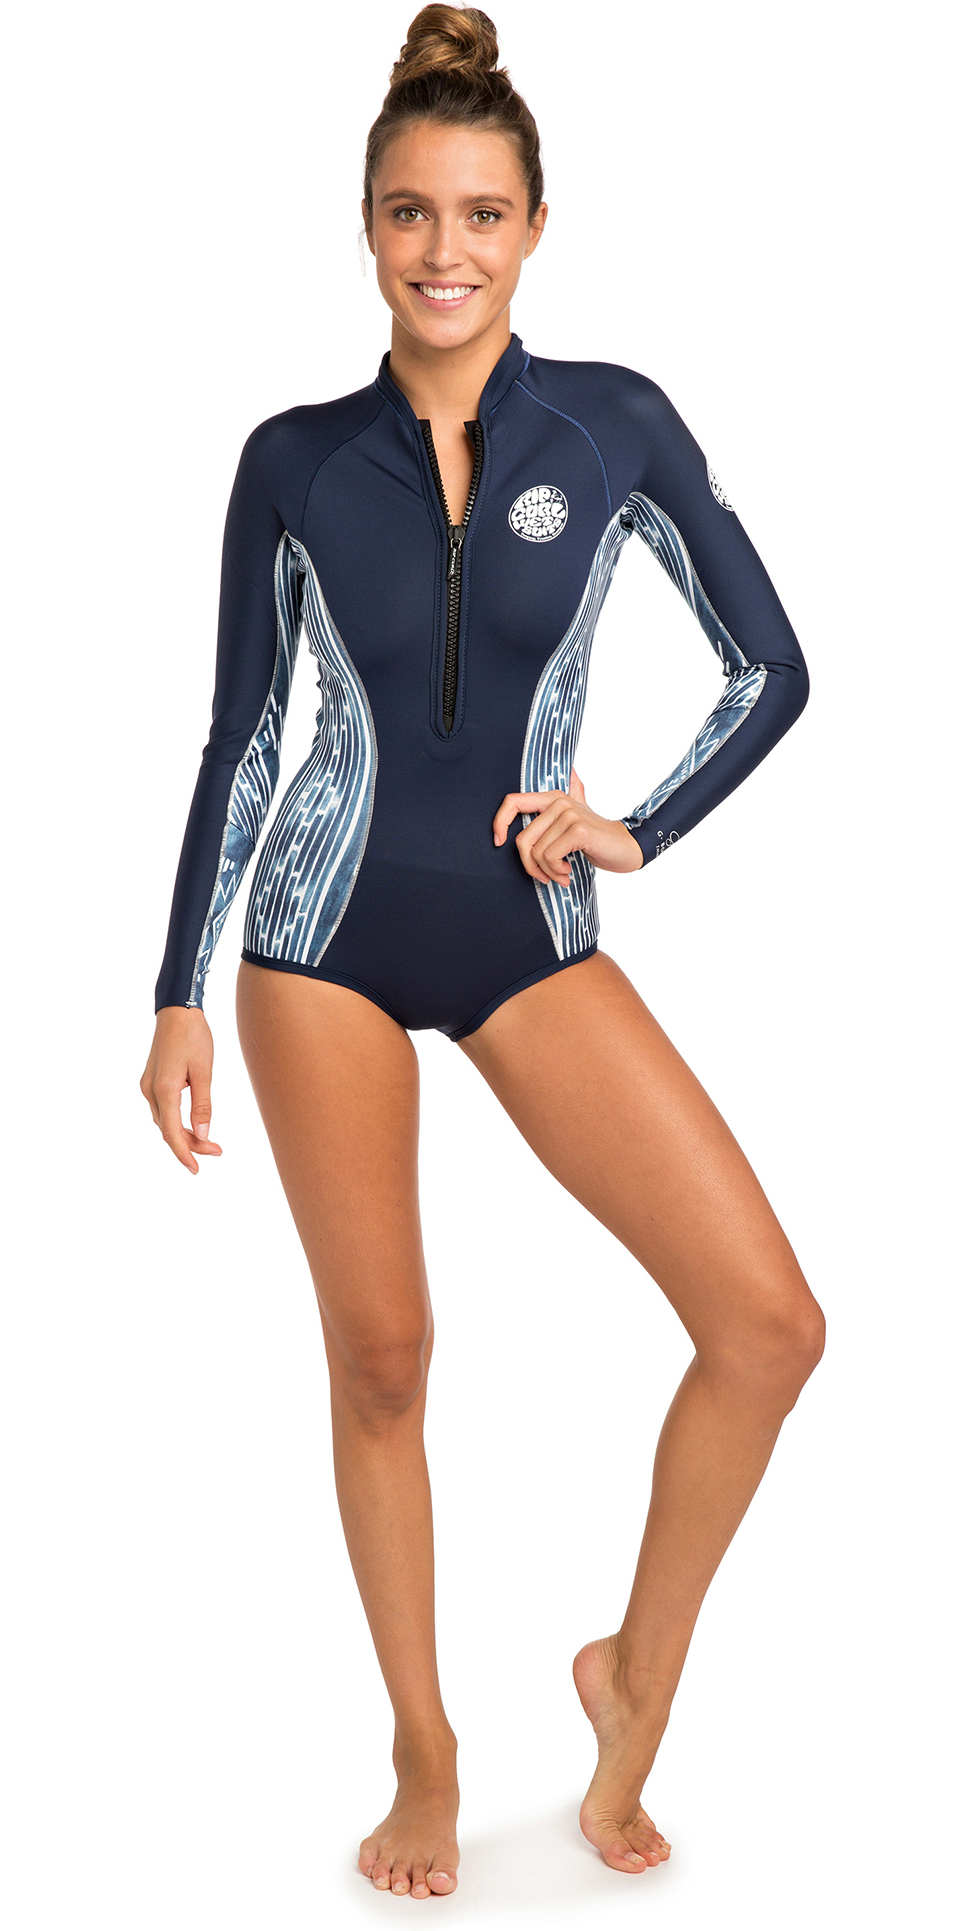 50416645eb76 2019 Rip Curl Womens G-bomb 1mm Long Sleeve Shorty Wetsuit Blue White  Wsp7lw - Womens | Wetsuit Outlet